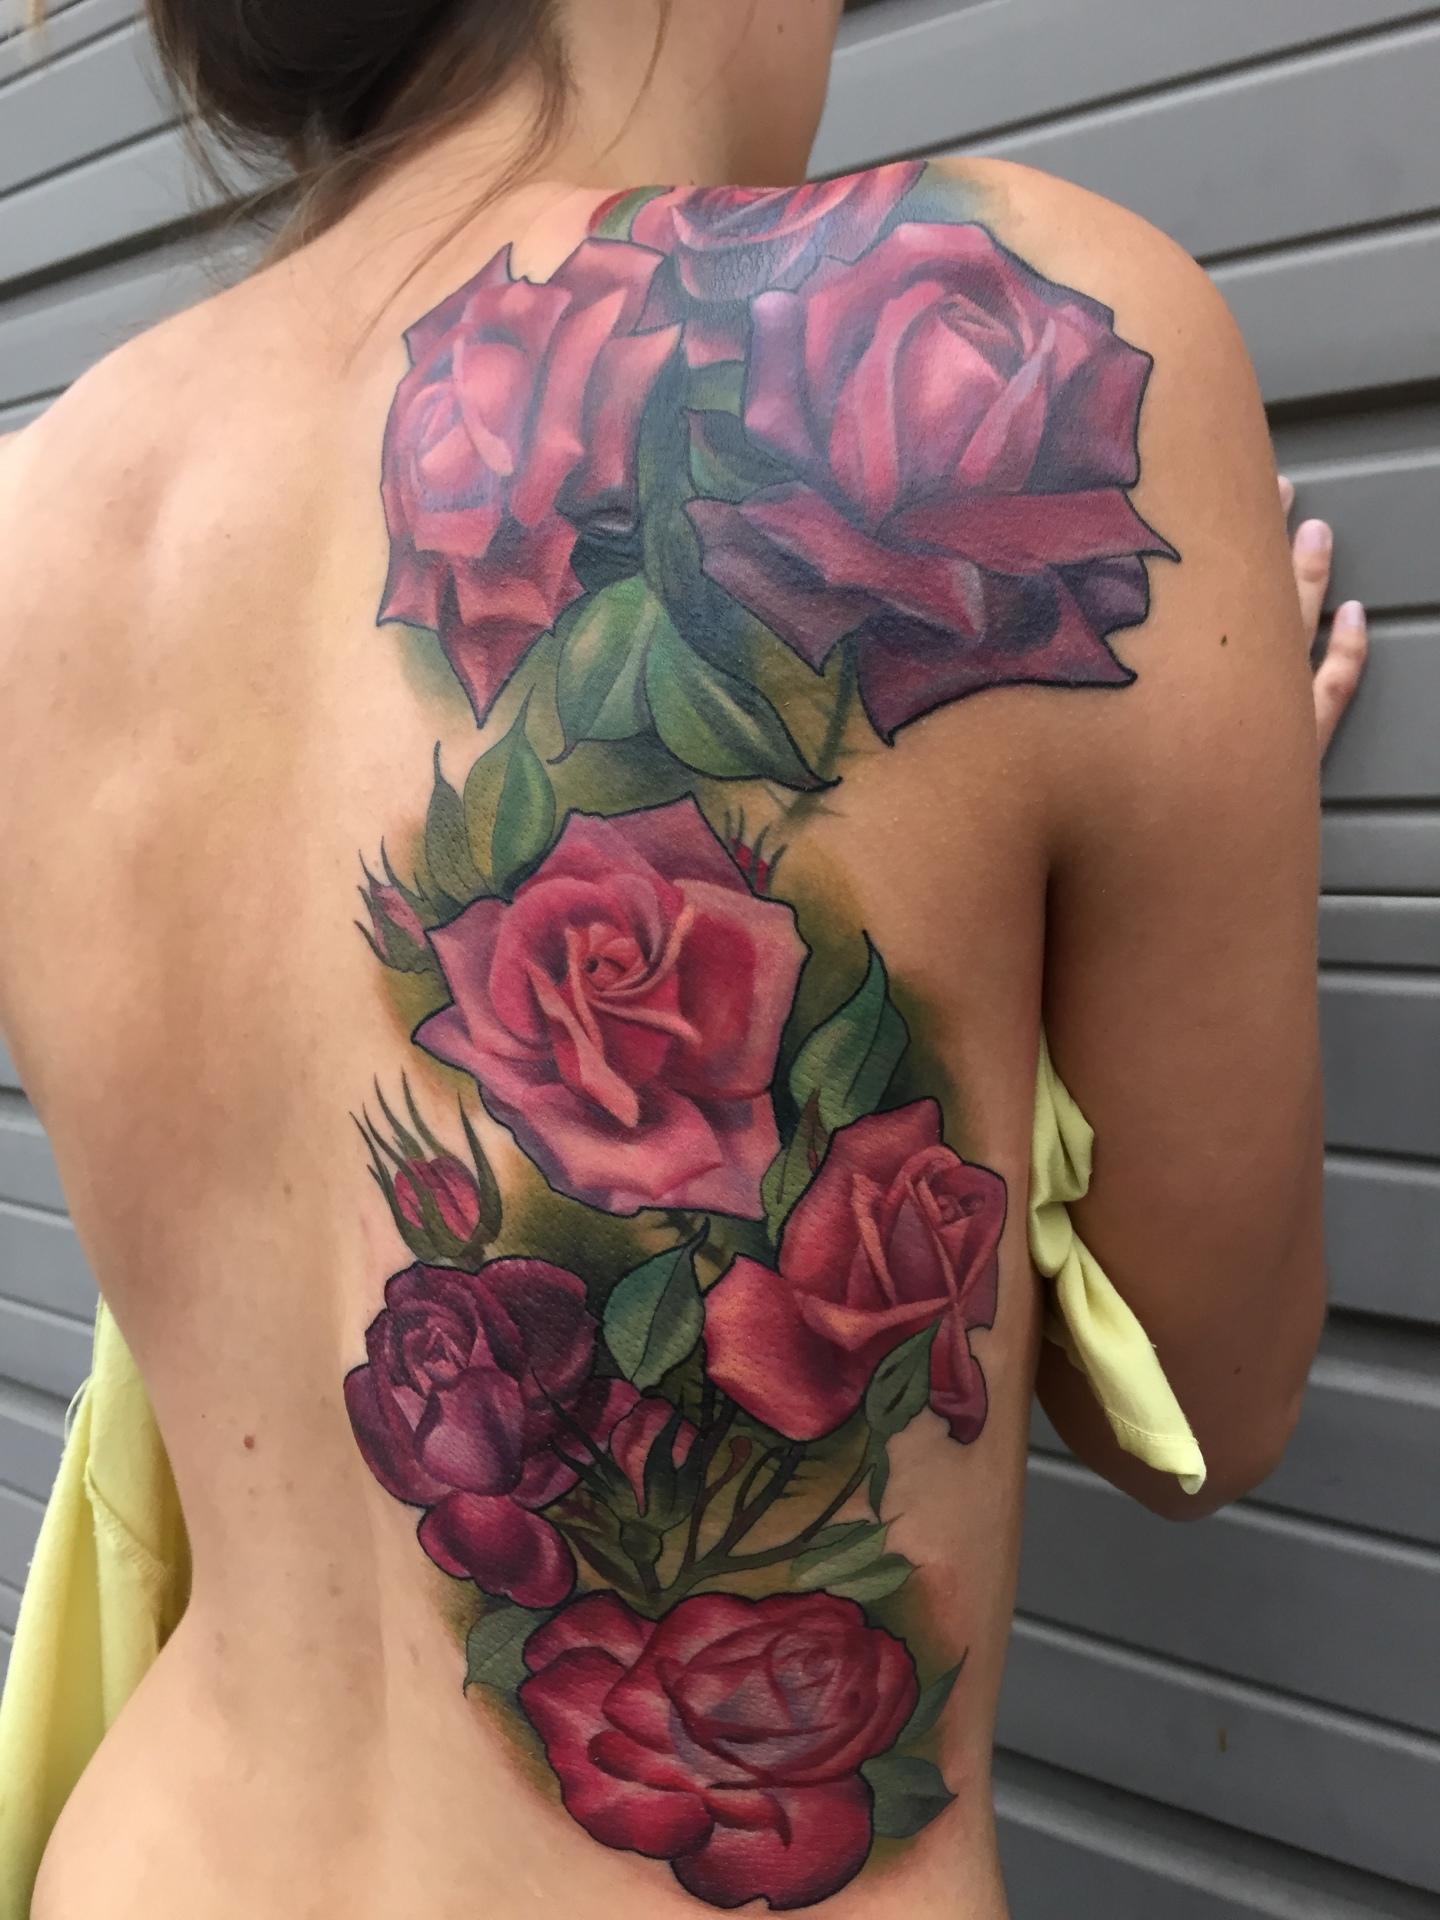 Rose, roses, tattoo, art, realism rose, pretty, beautiful, floral, floral tattoo, orange county tattoo, nakota garza